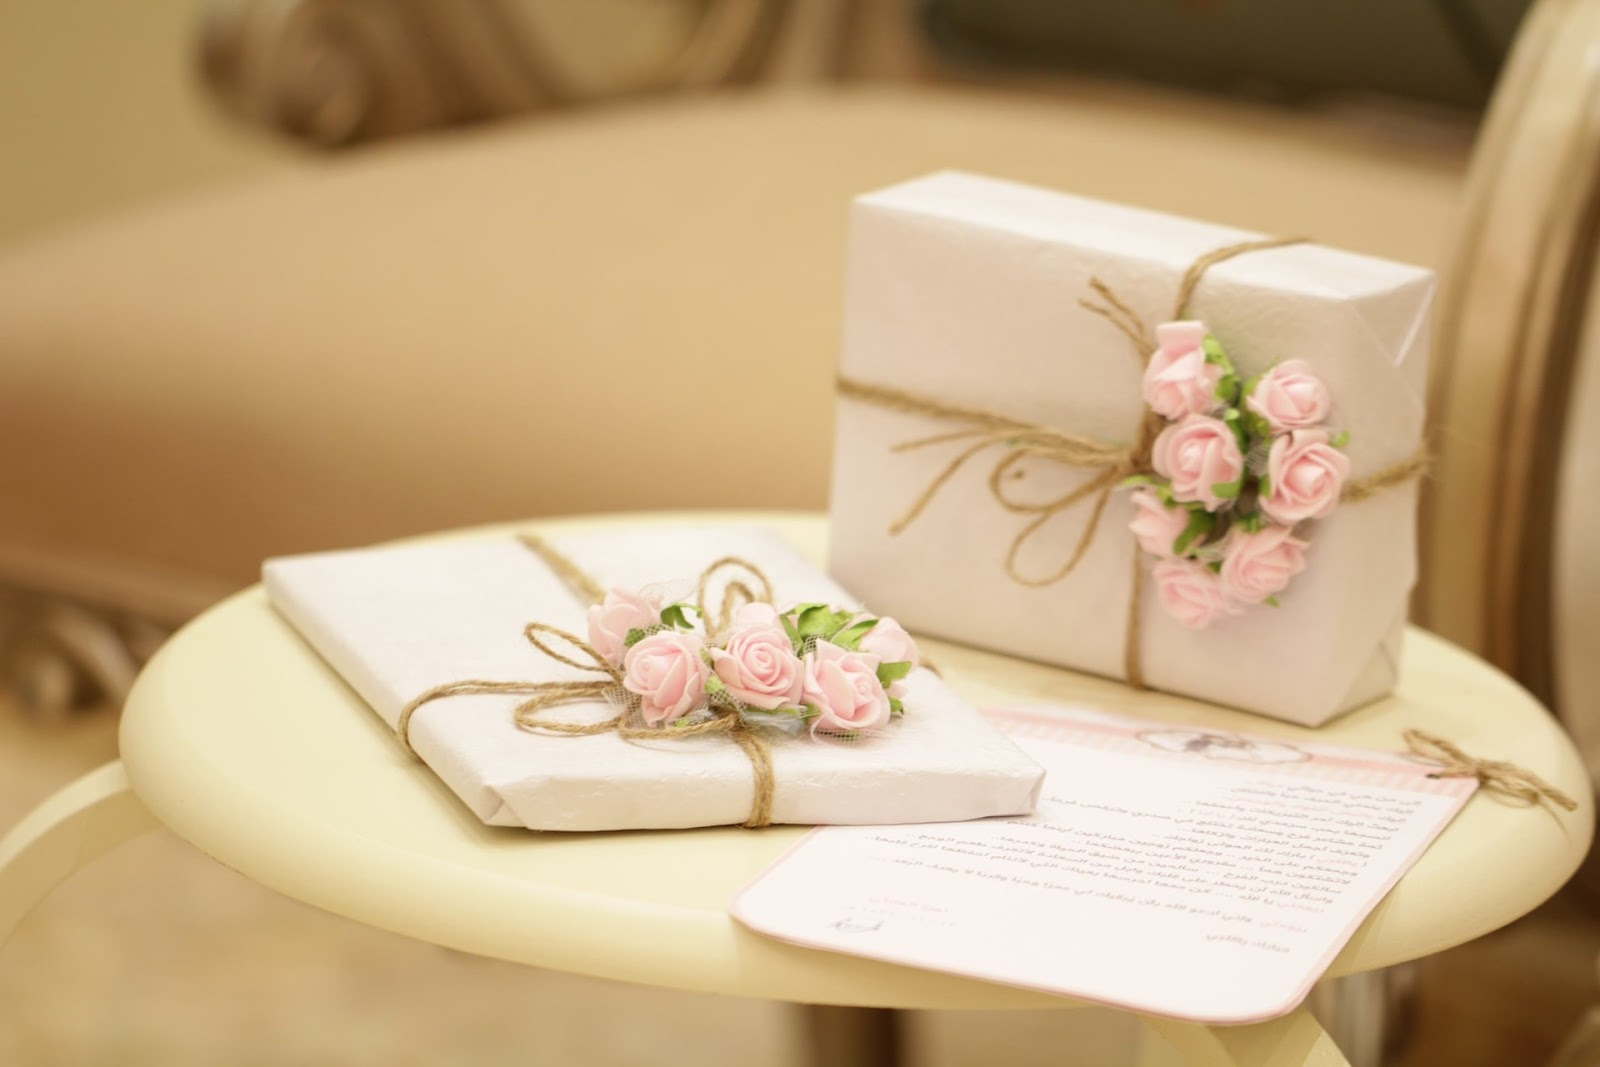 Ways to personalise a wedding gift; two well-wrapped gifts placed on a white round table